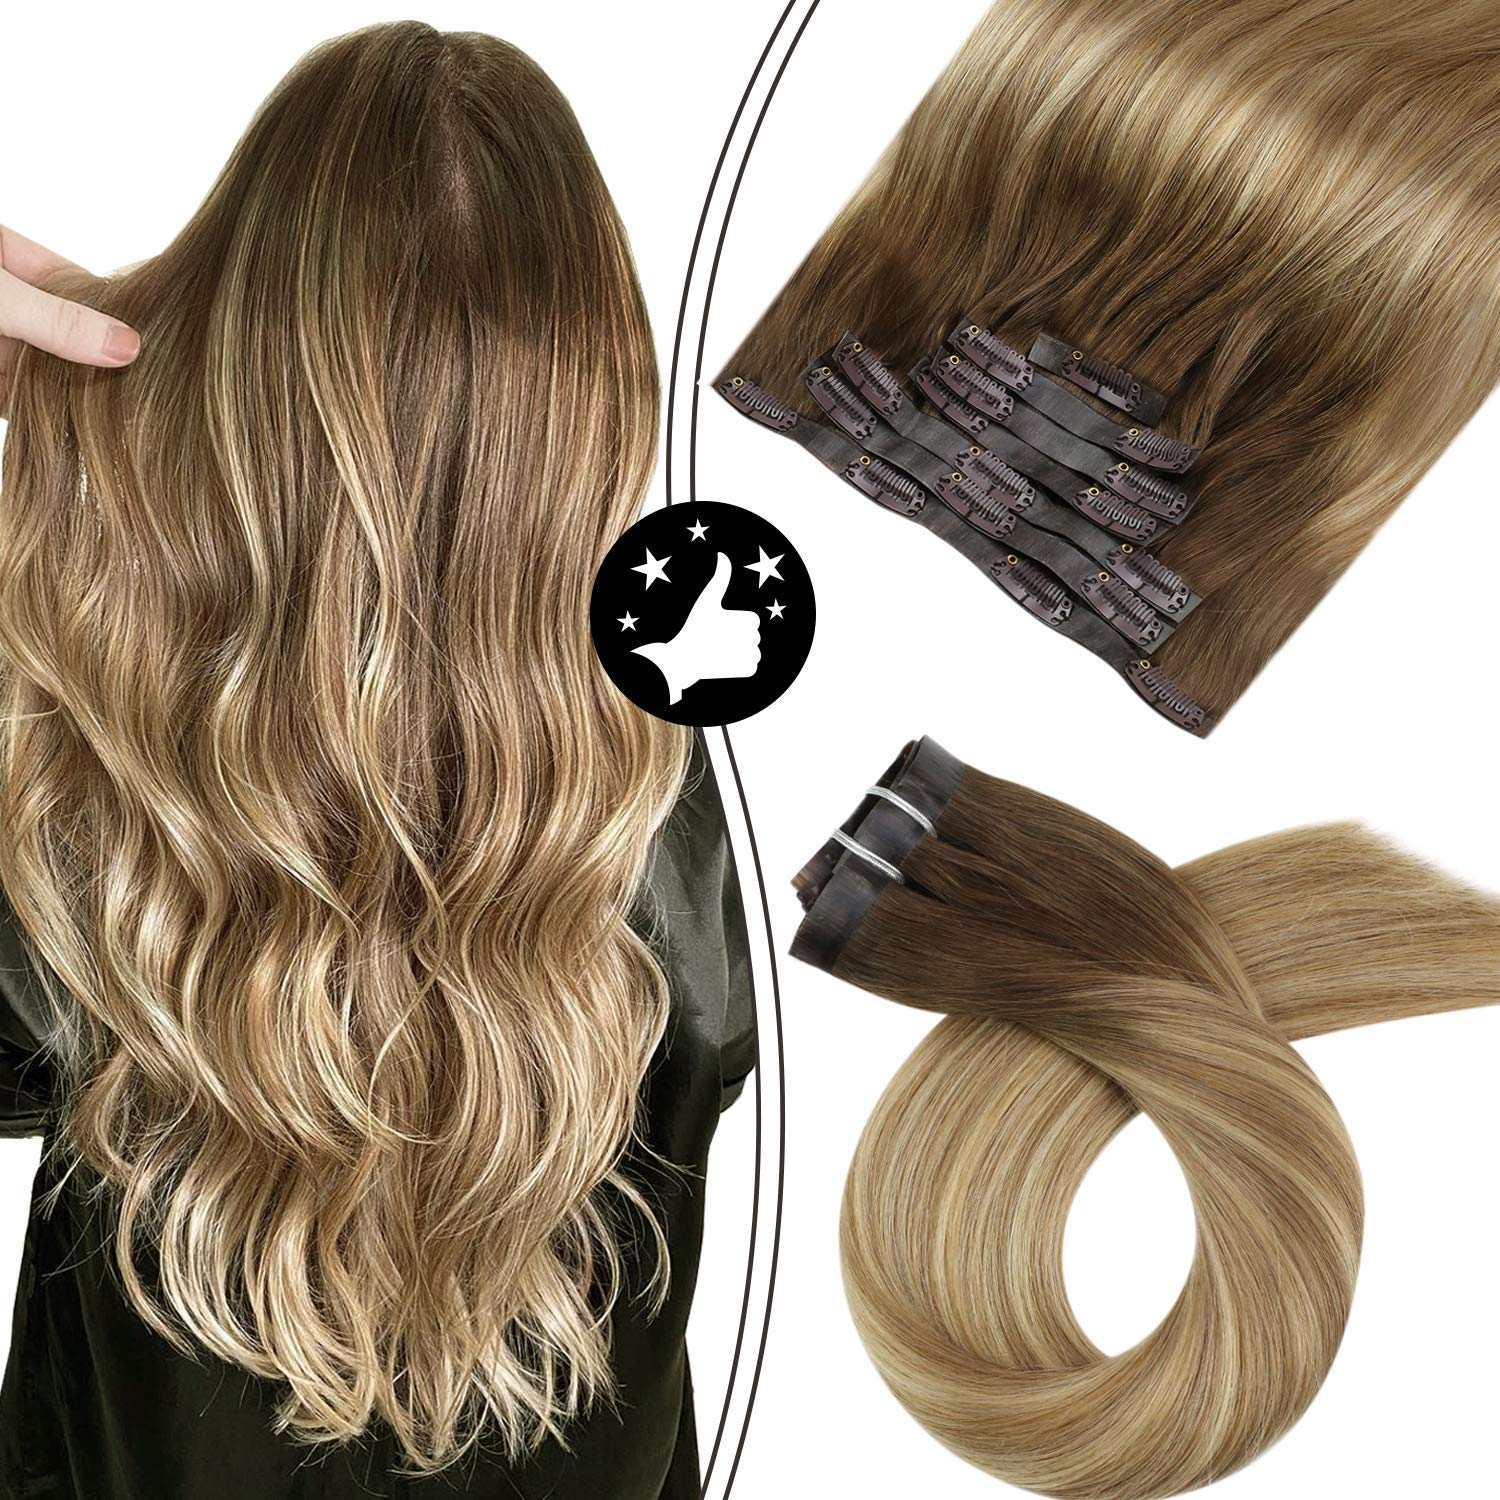 PU Clip in Hair Extensions Real Human Hair Seamless Invisible 100g 7pcs Balayage Ombre Color #3/8/22 Machine Remy Hair Natural